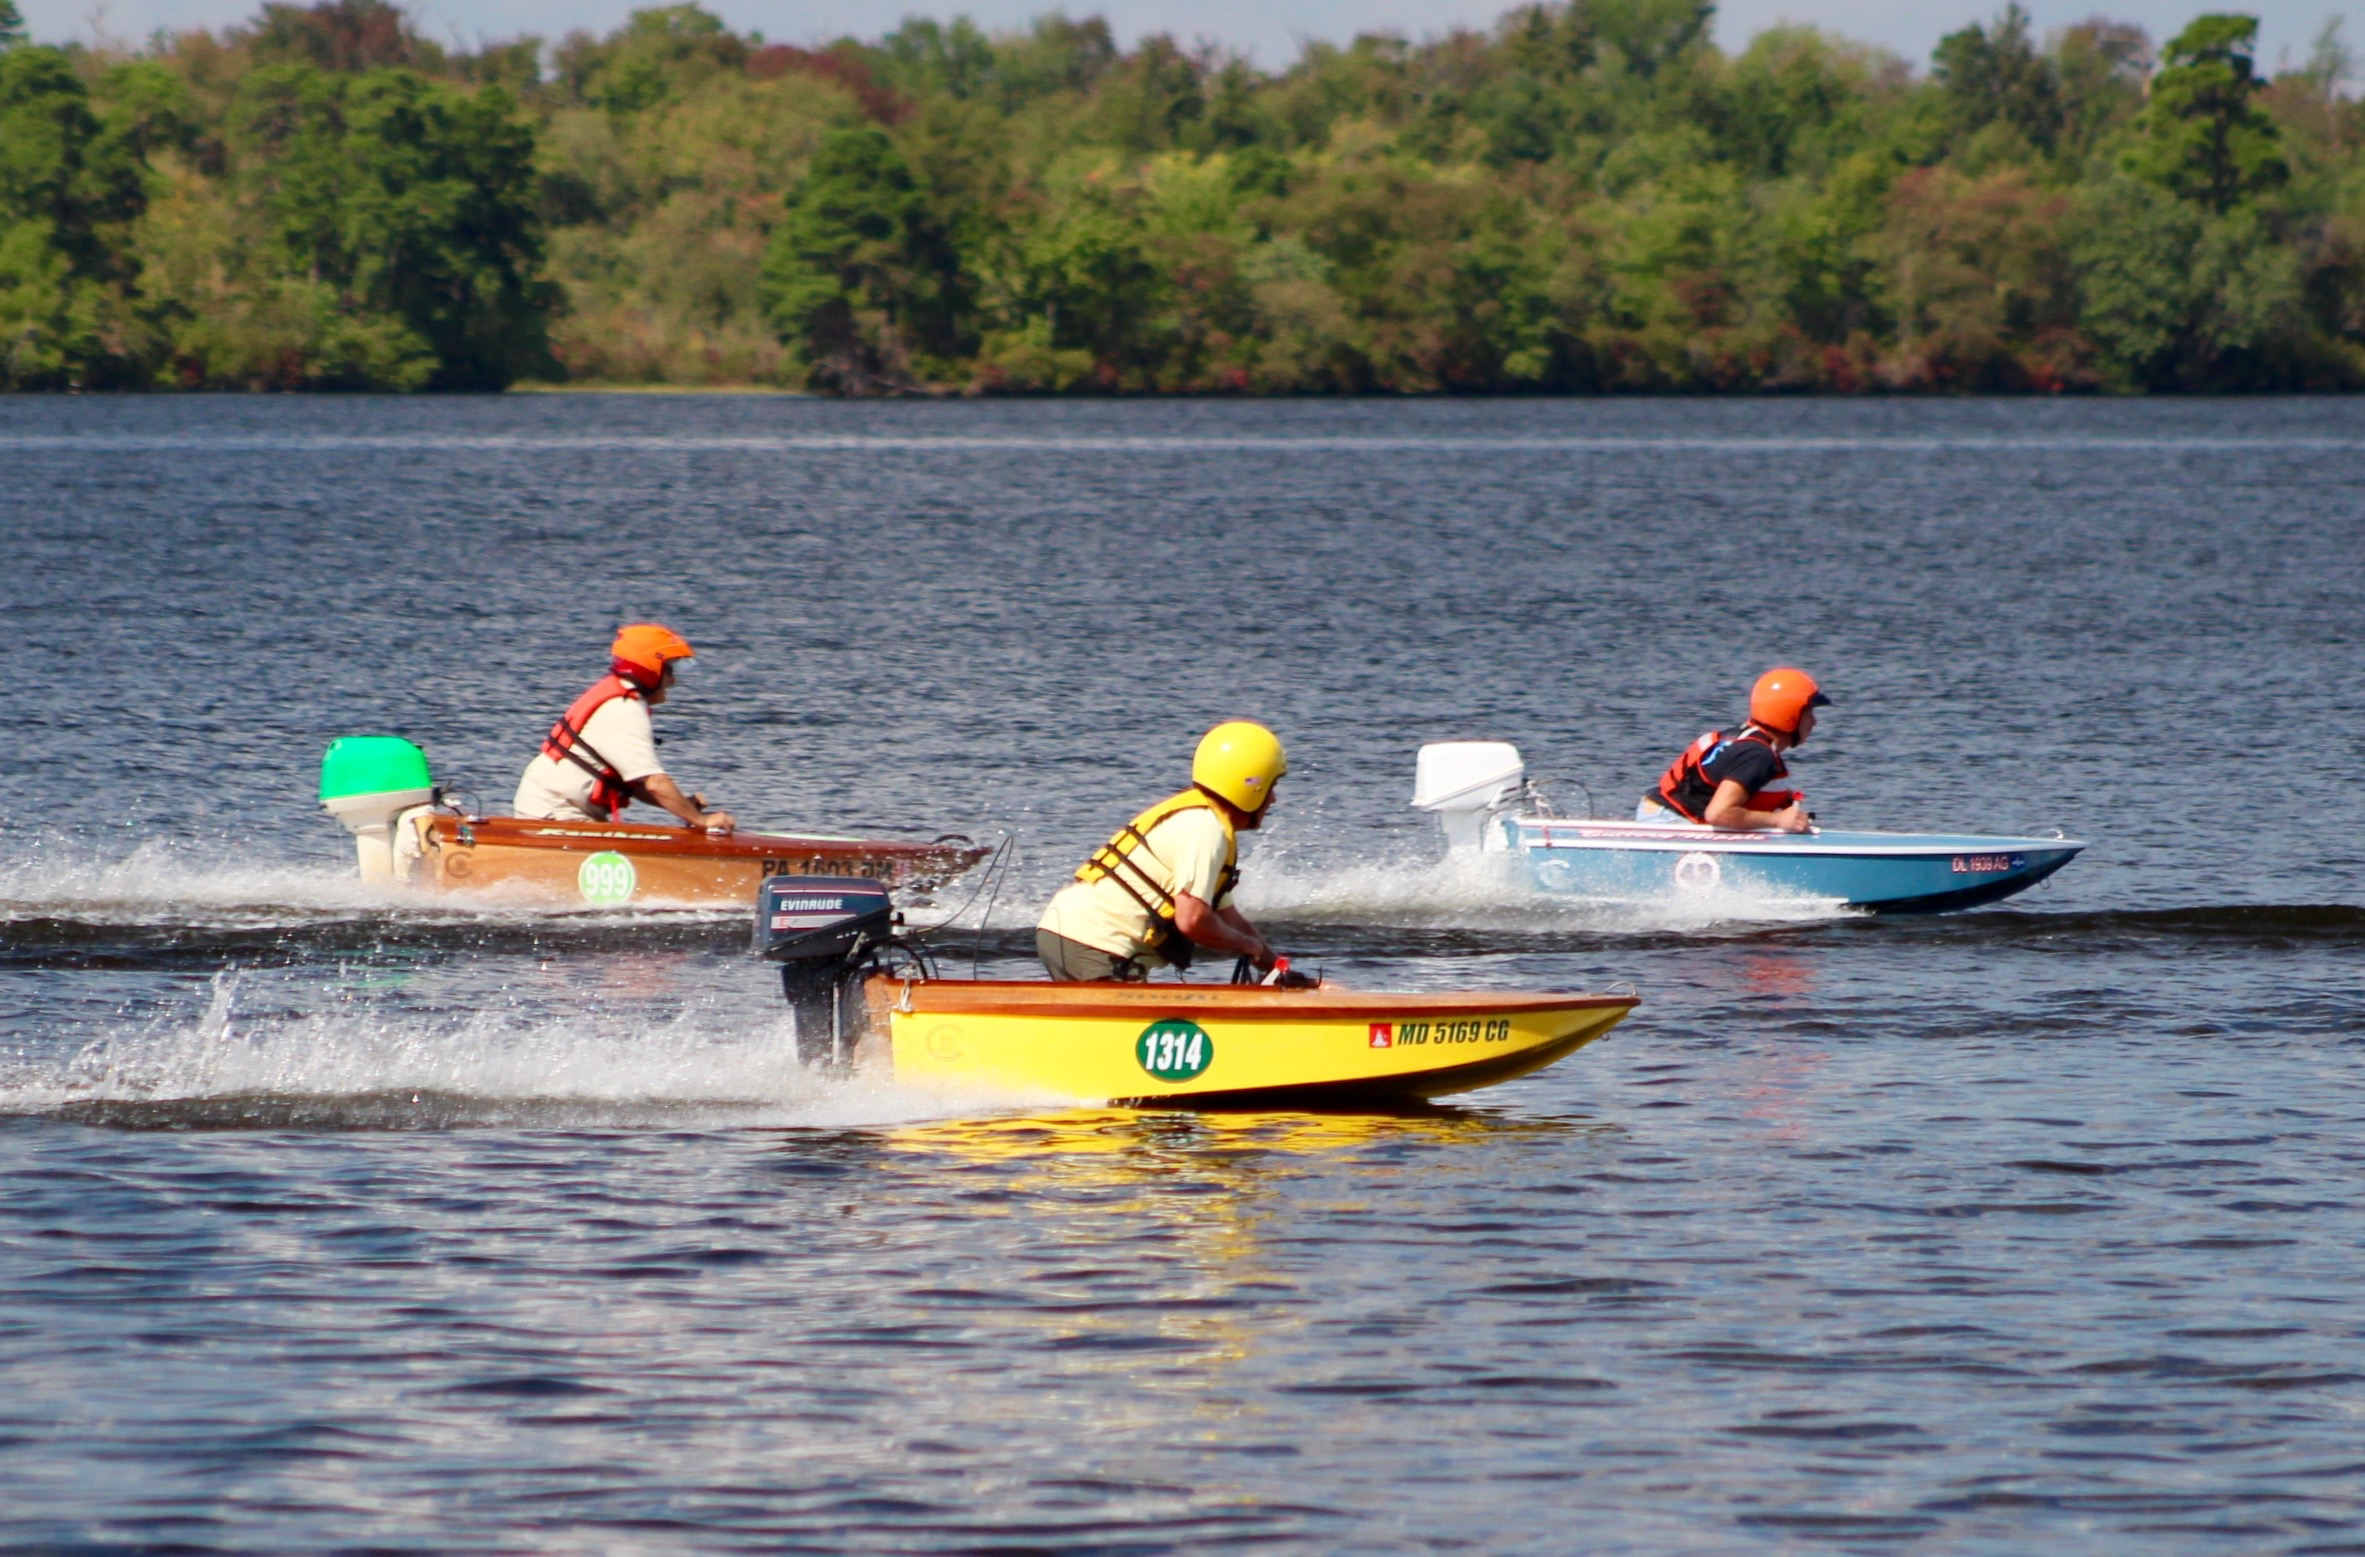 3rd Annual Union Lake Regatta